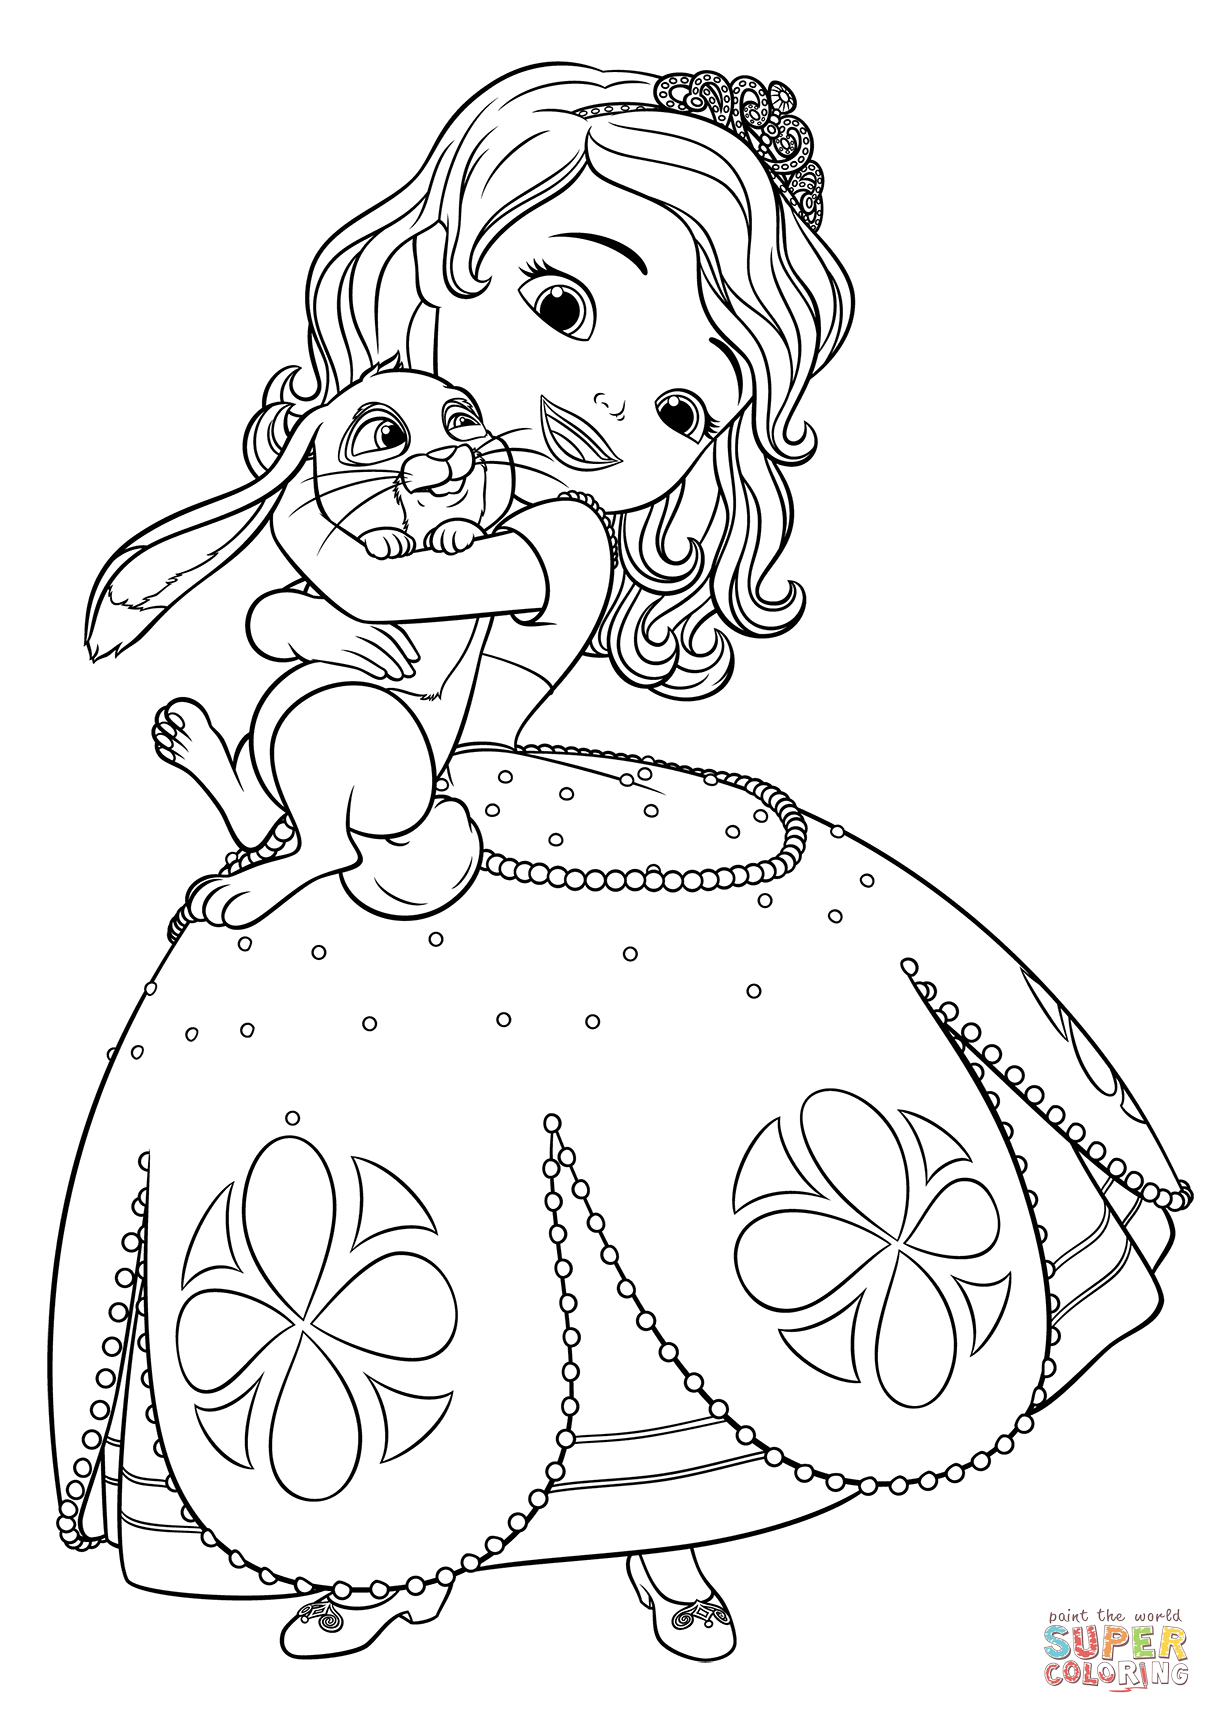 Sofia And Clover Super Coloring Cartoon Coloring Pages Princess Coloring Pages Disney Coloring Pages Printables